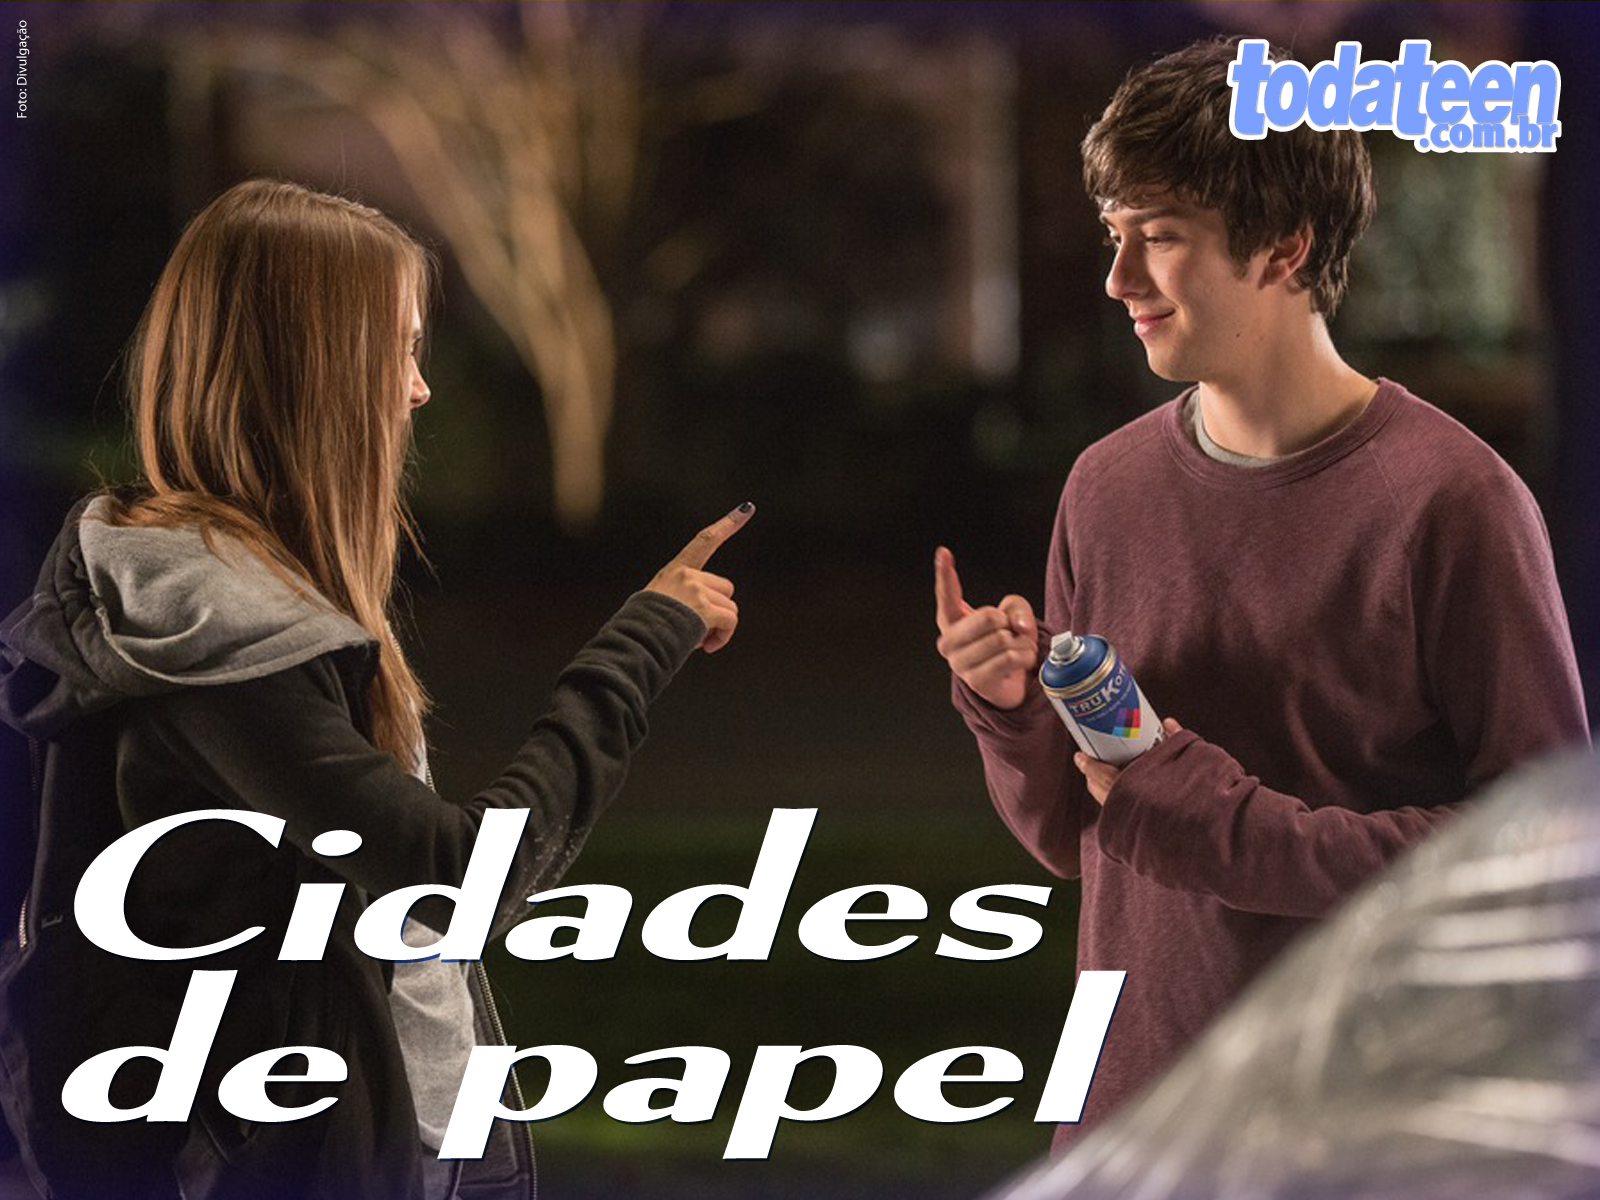 Cidades de Papel Wallpaper (Fullscreen)